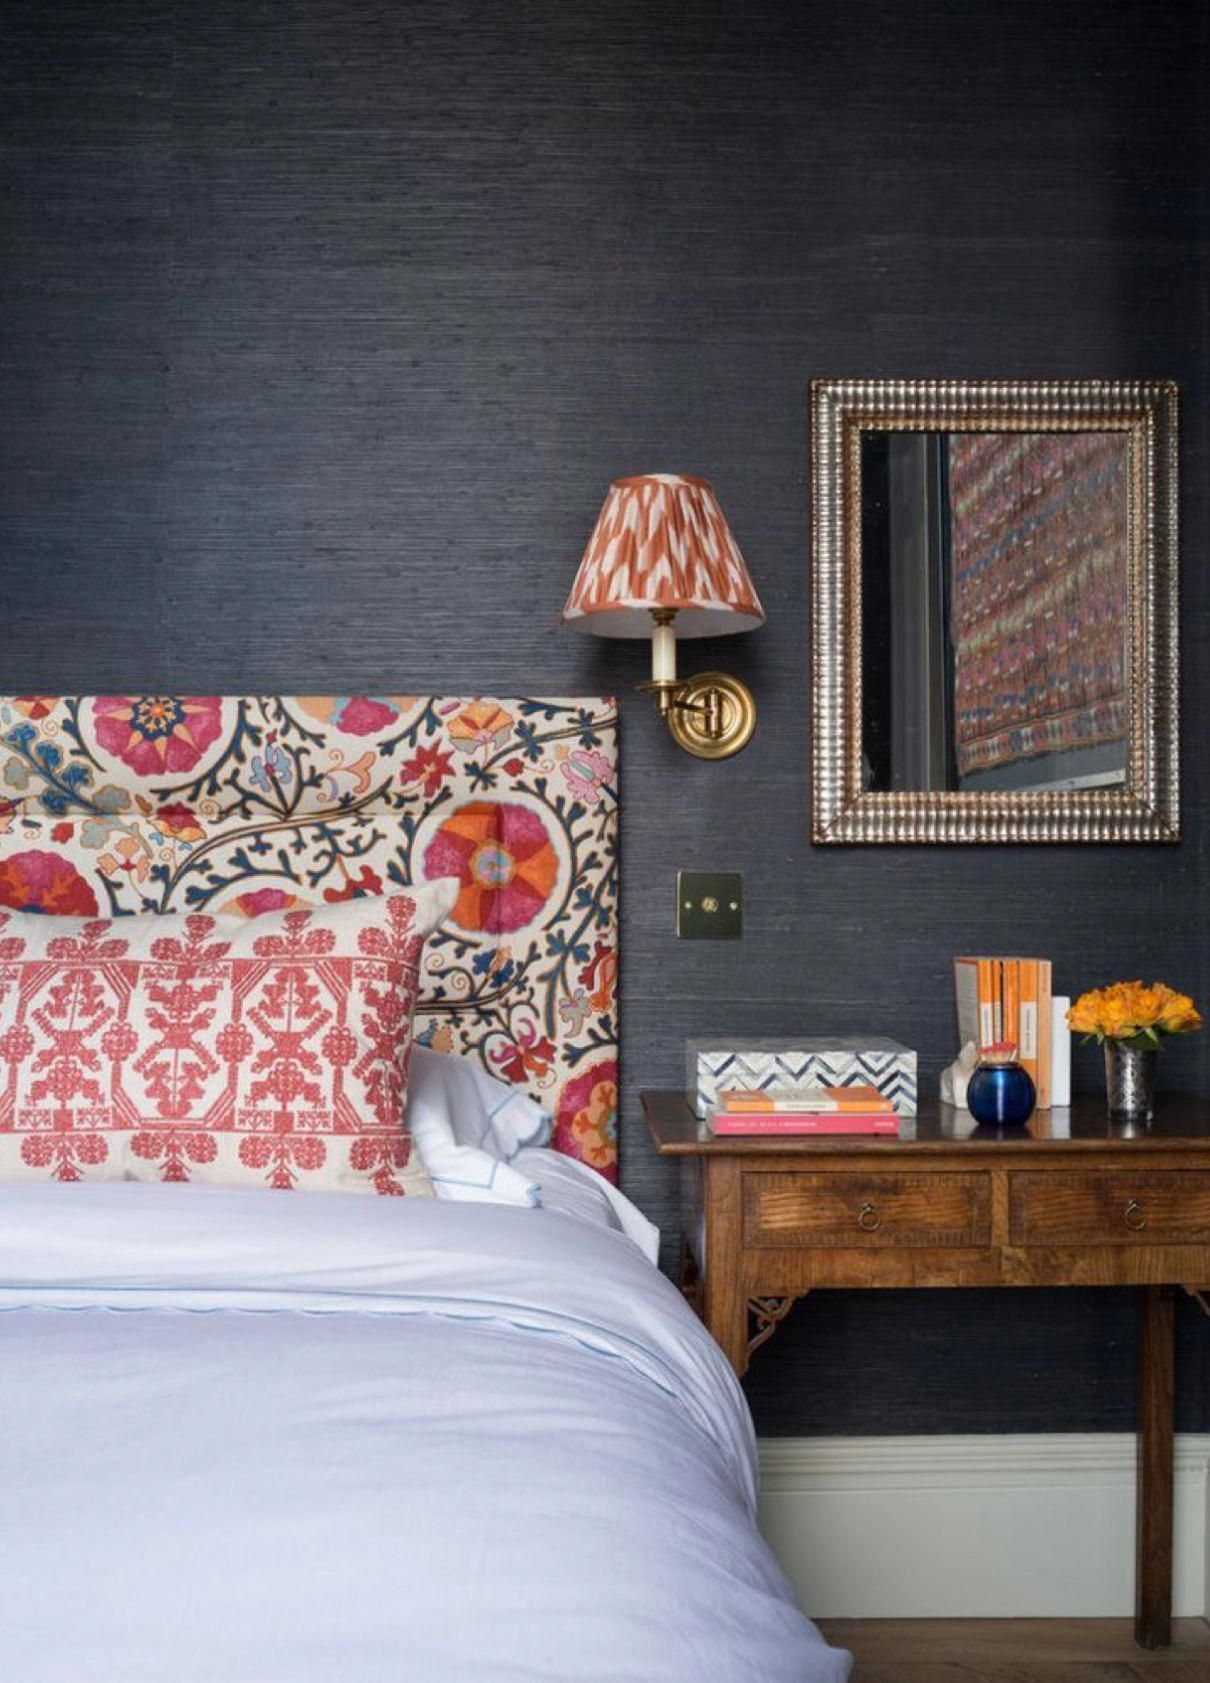 Bedroom Creator Online: Follow These Principles To Create The Perfect Bedroom